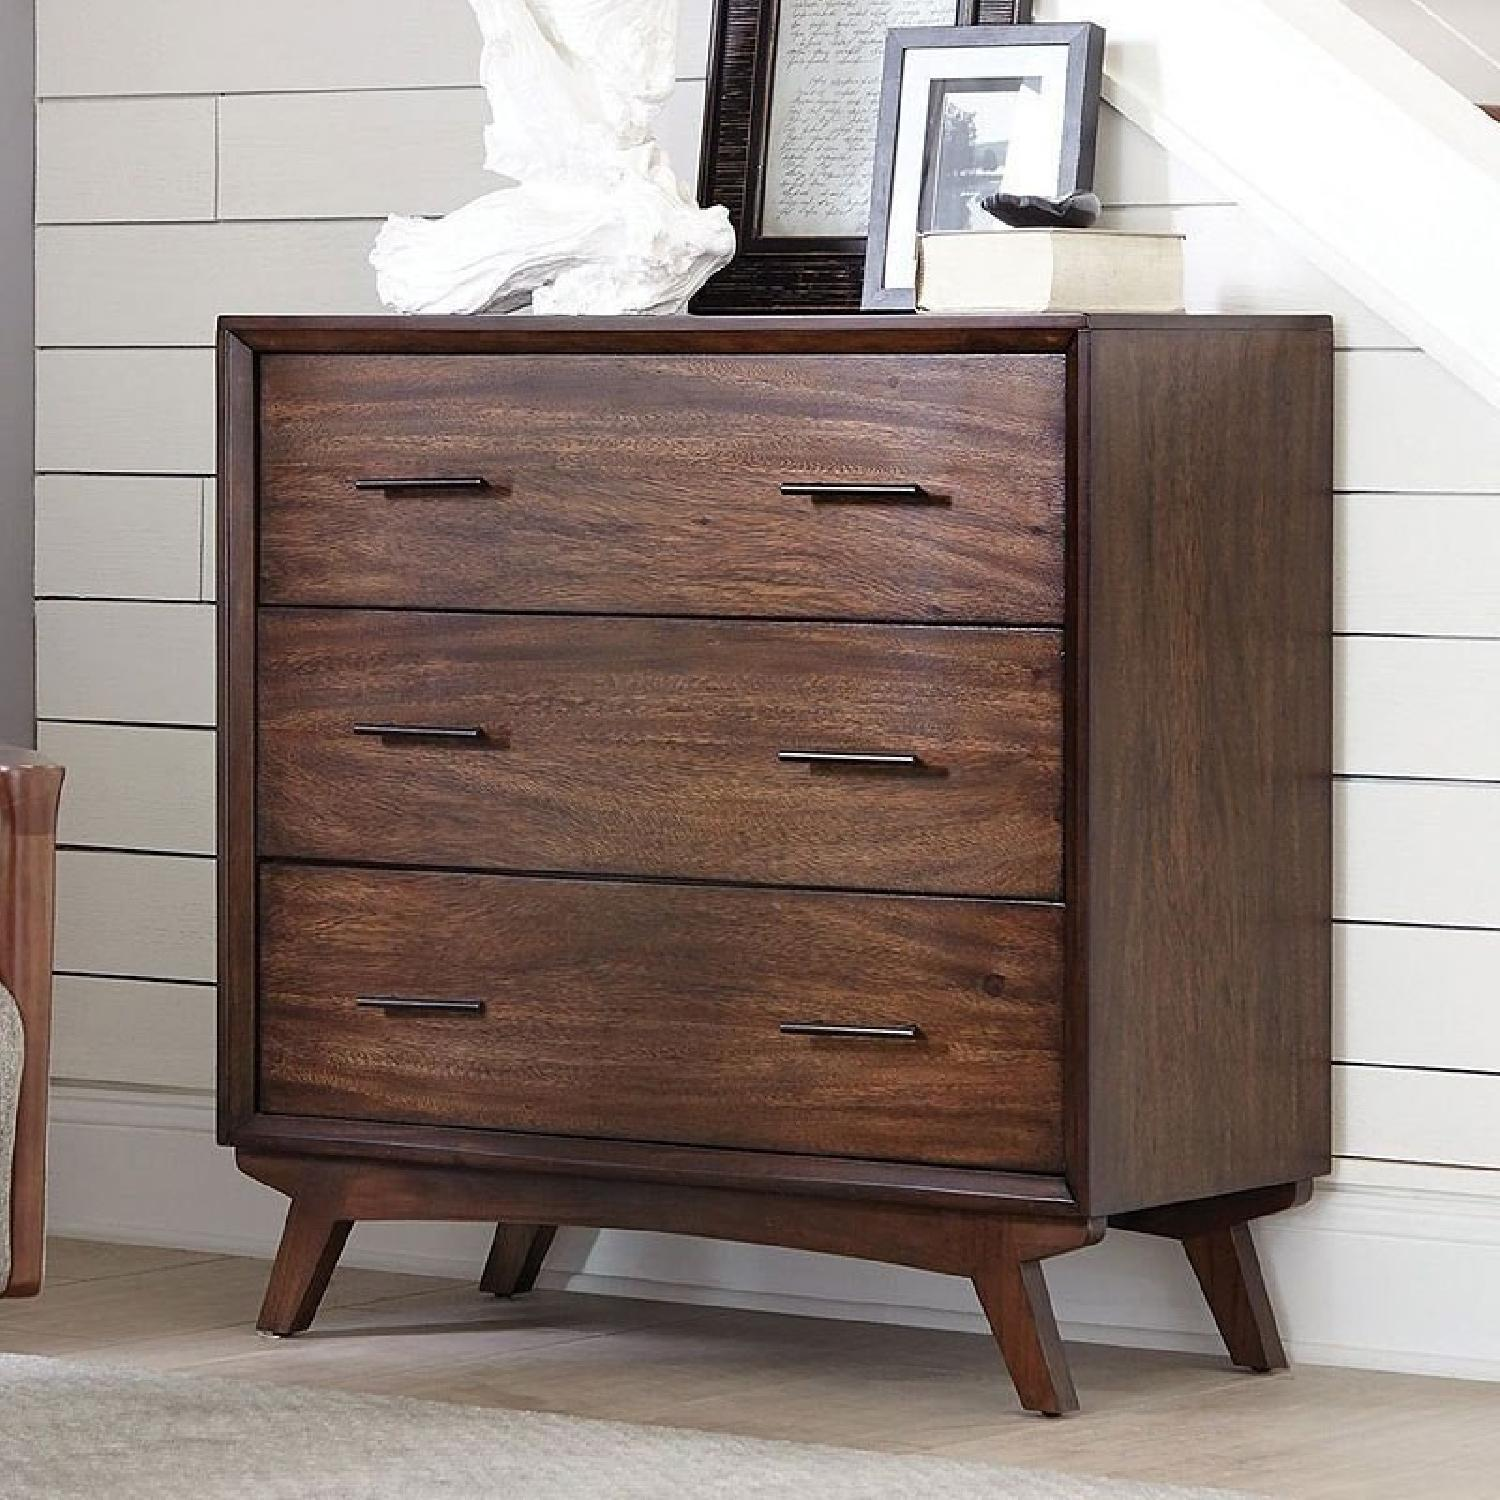 Warm Brown 3 Drawers Accent Cabinet-0